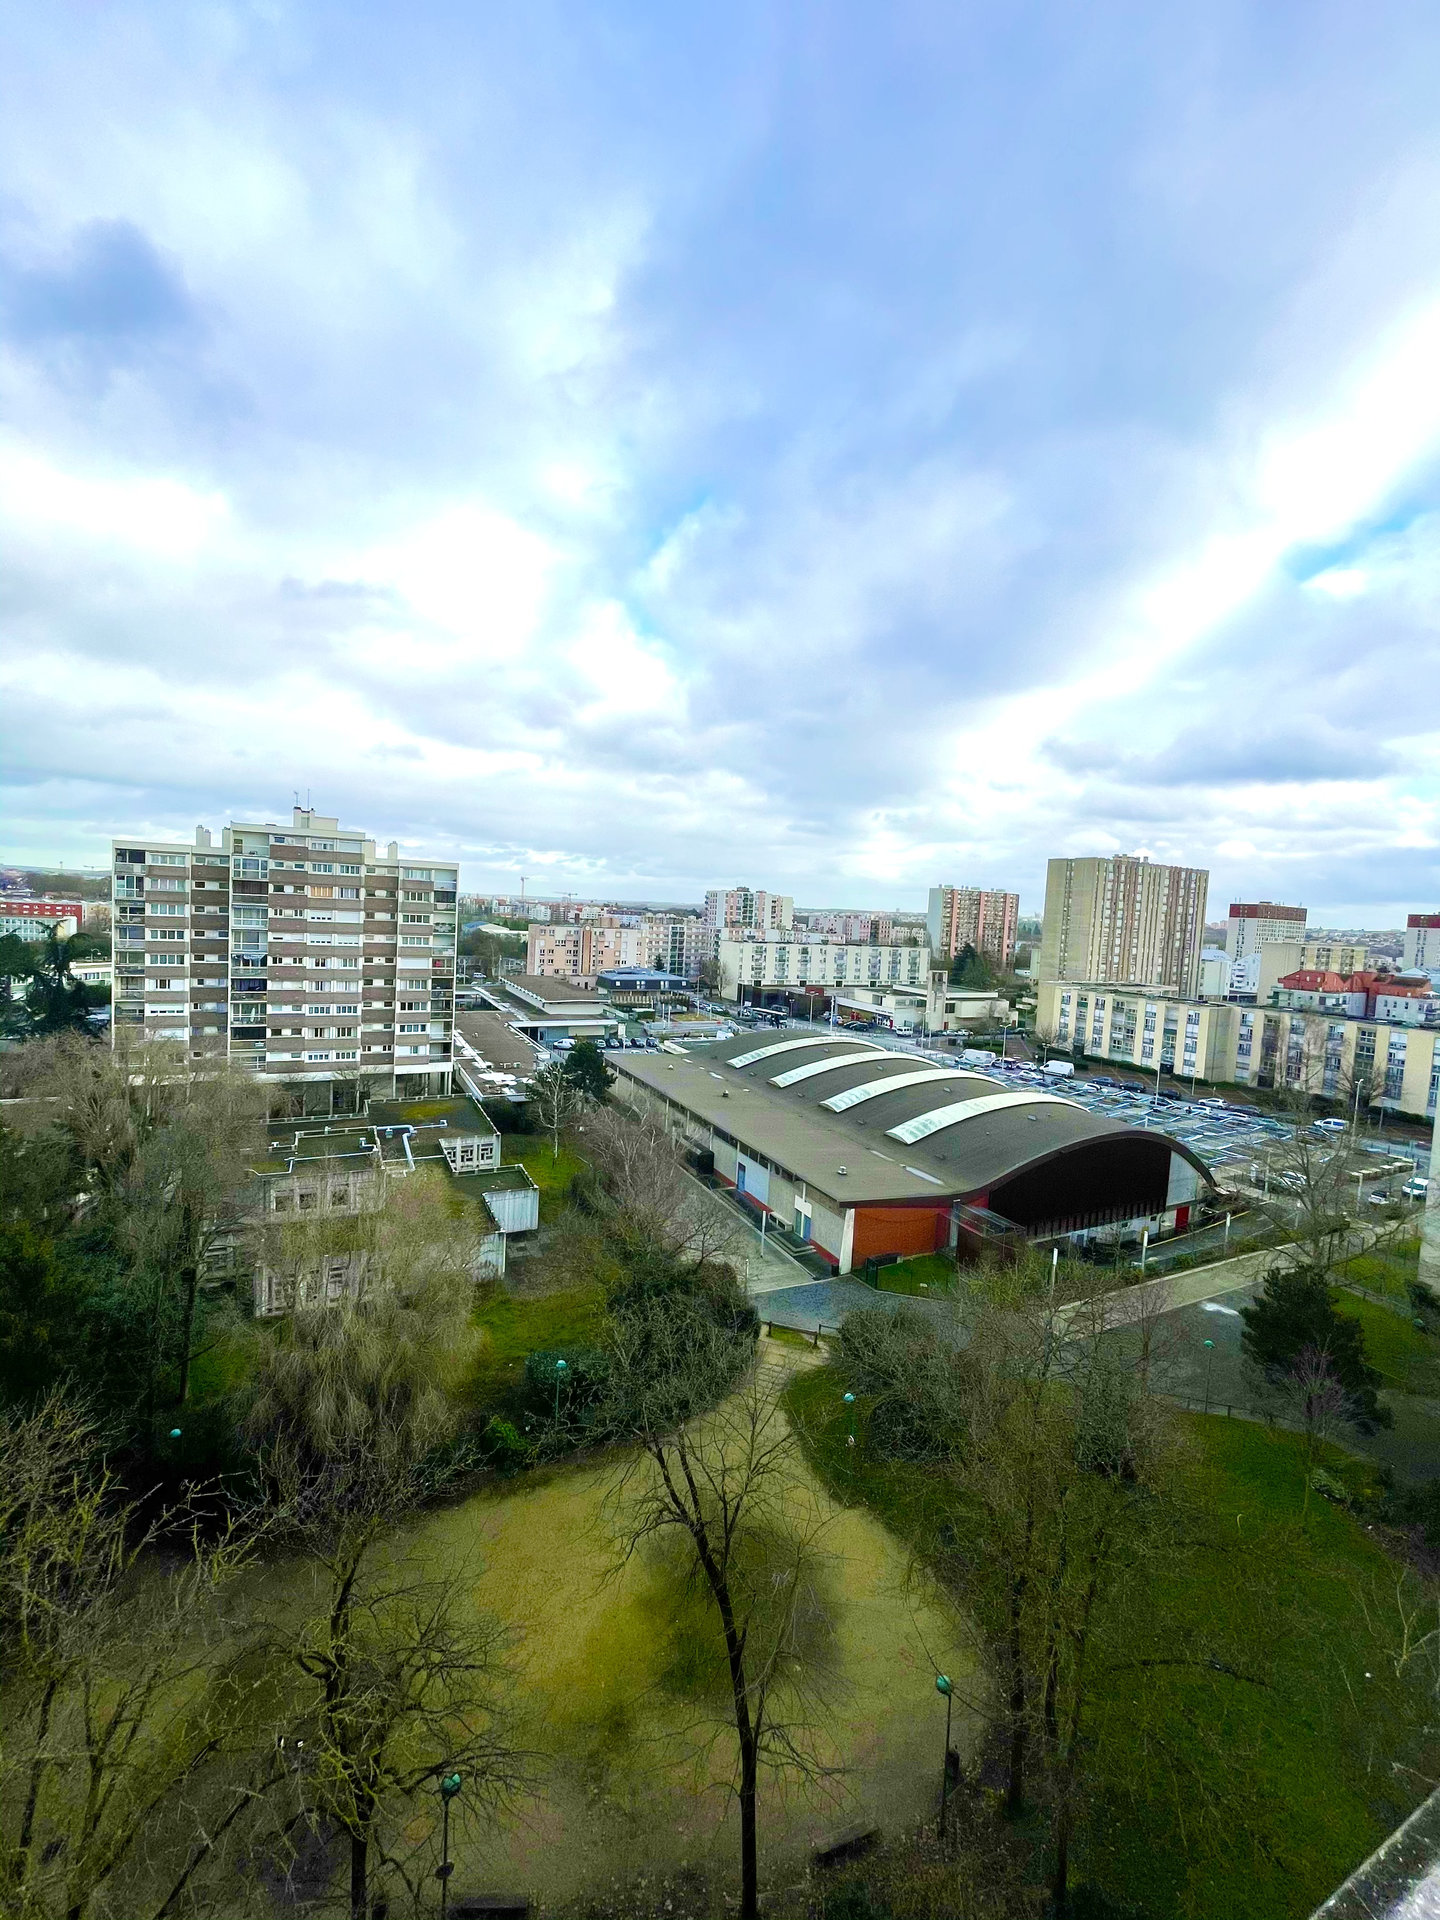 2/3 pièces Neuilly sur Marne